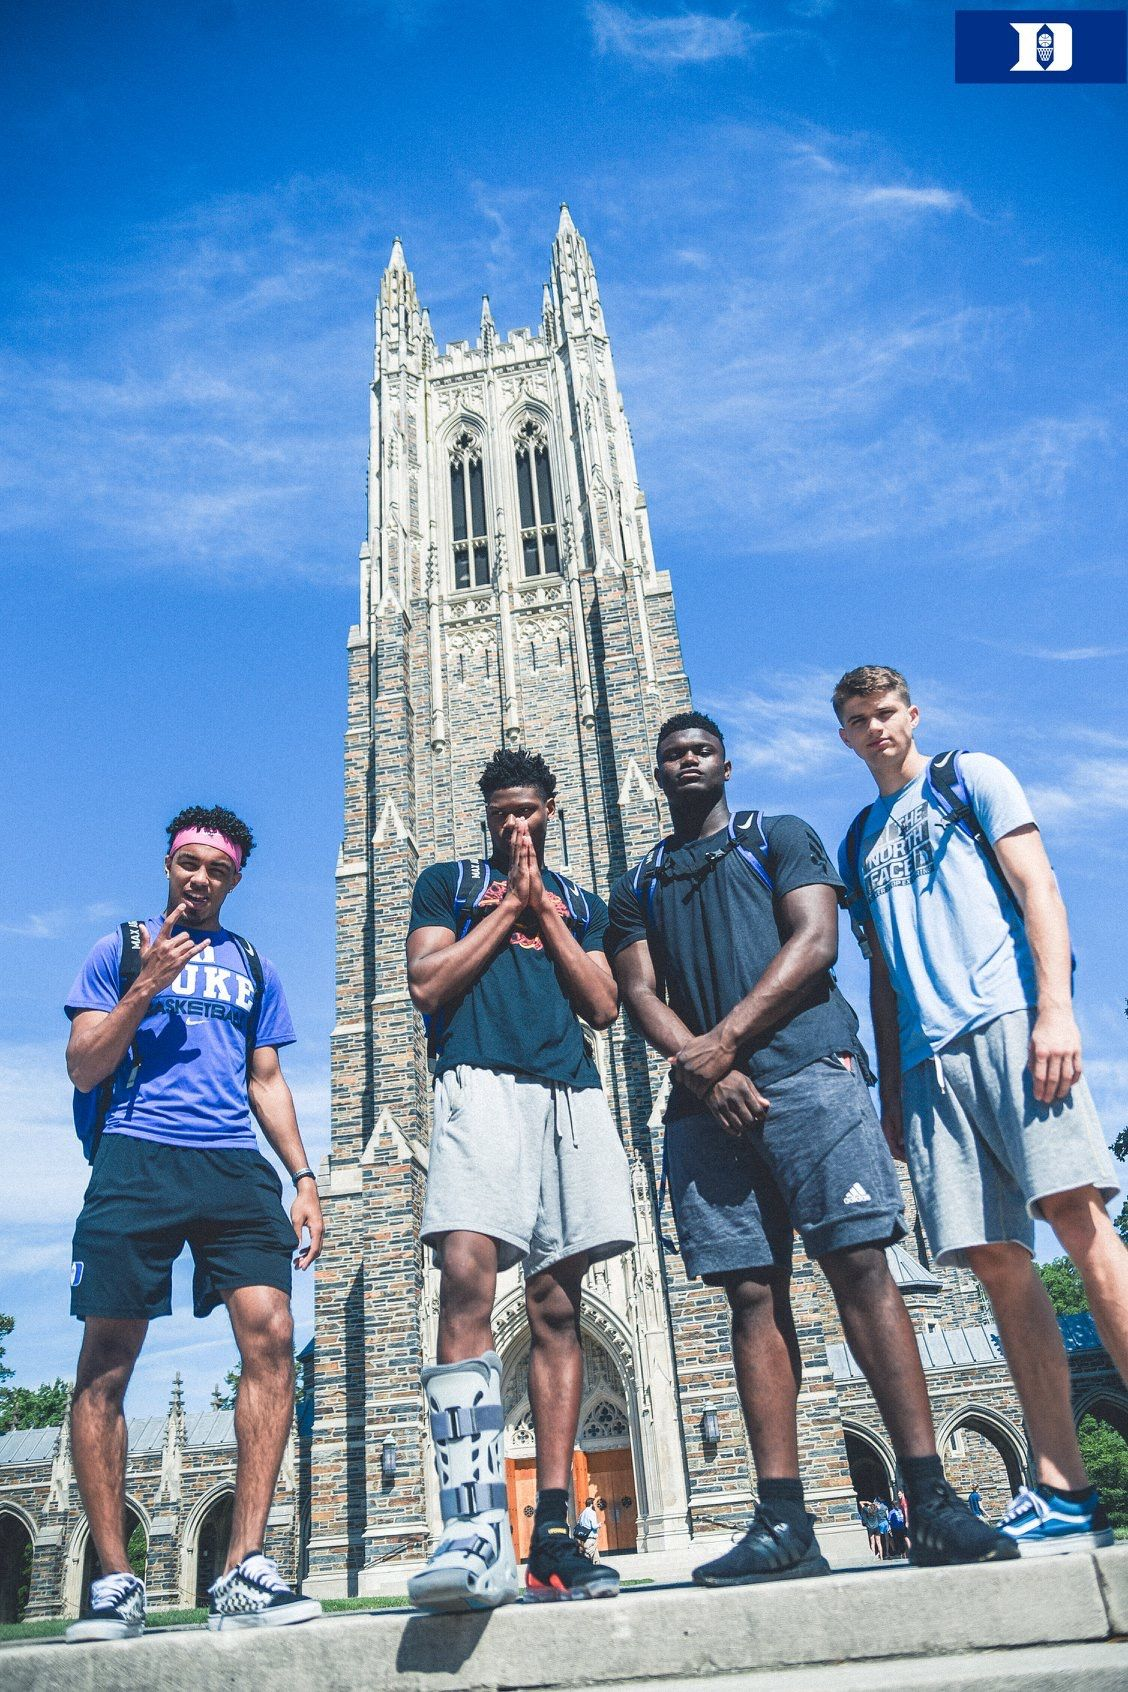 New big boys on campus. Duke blue devils basketball